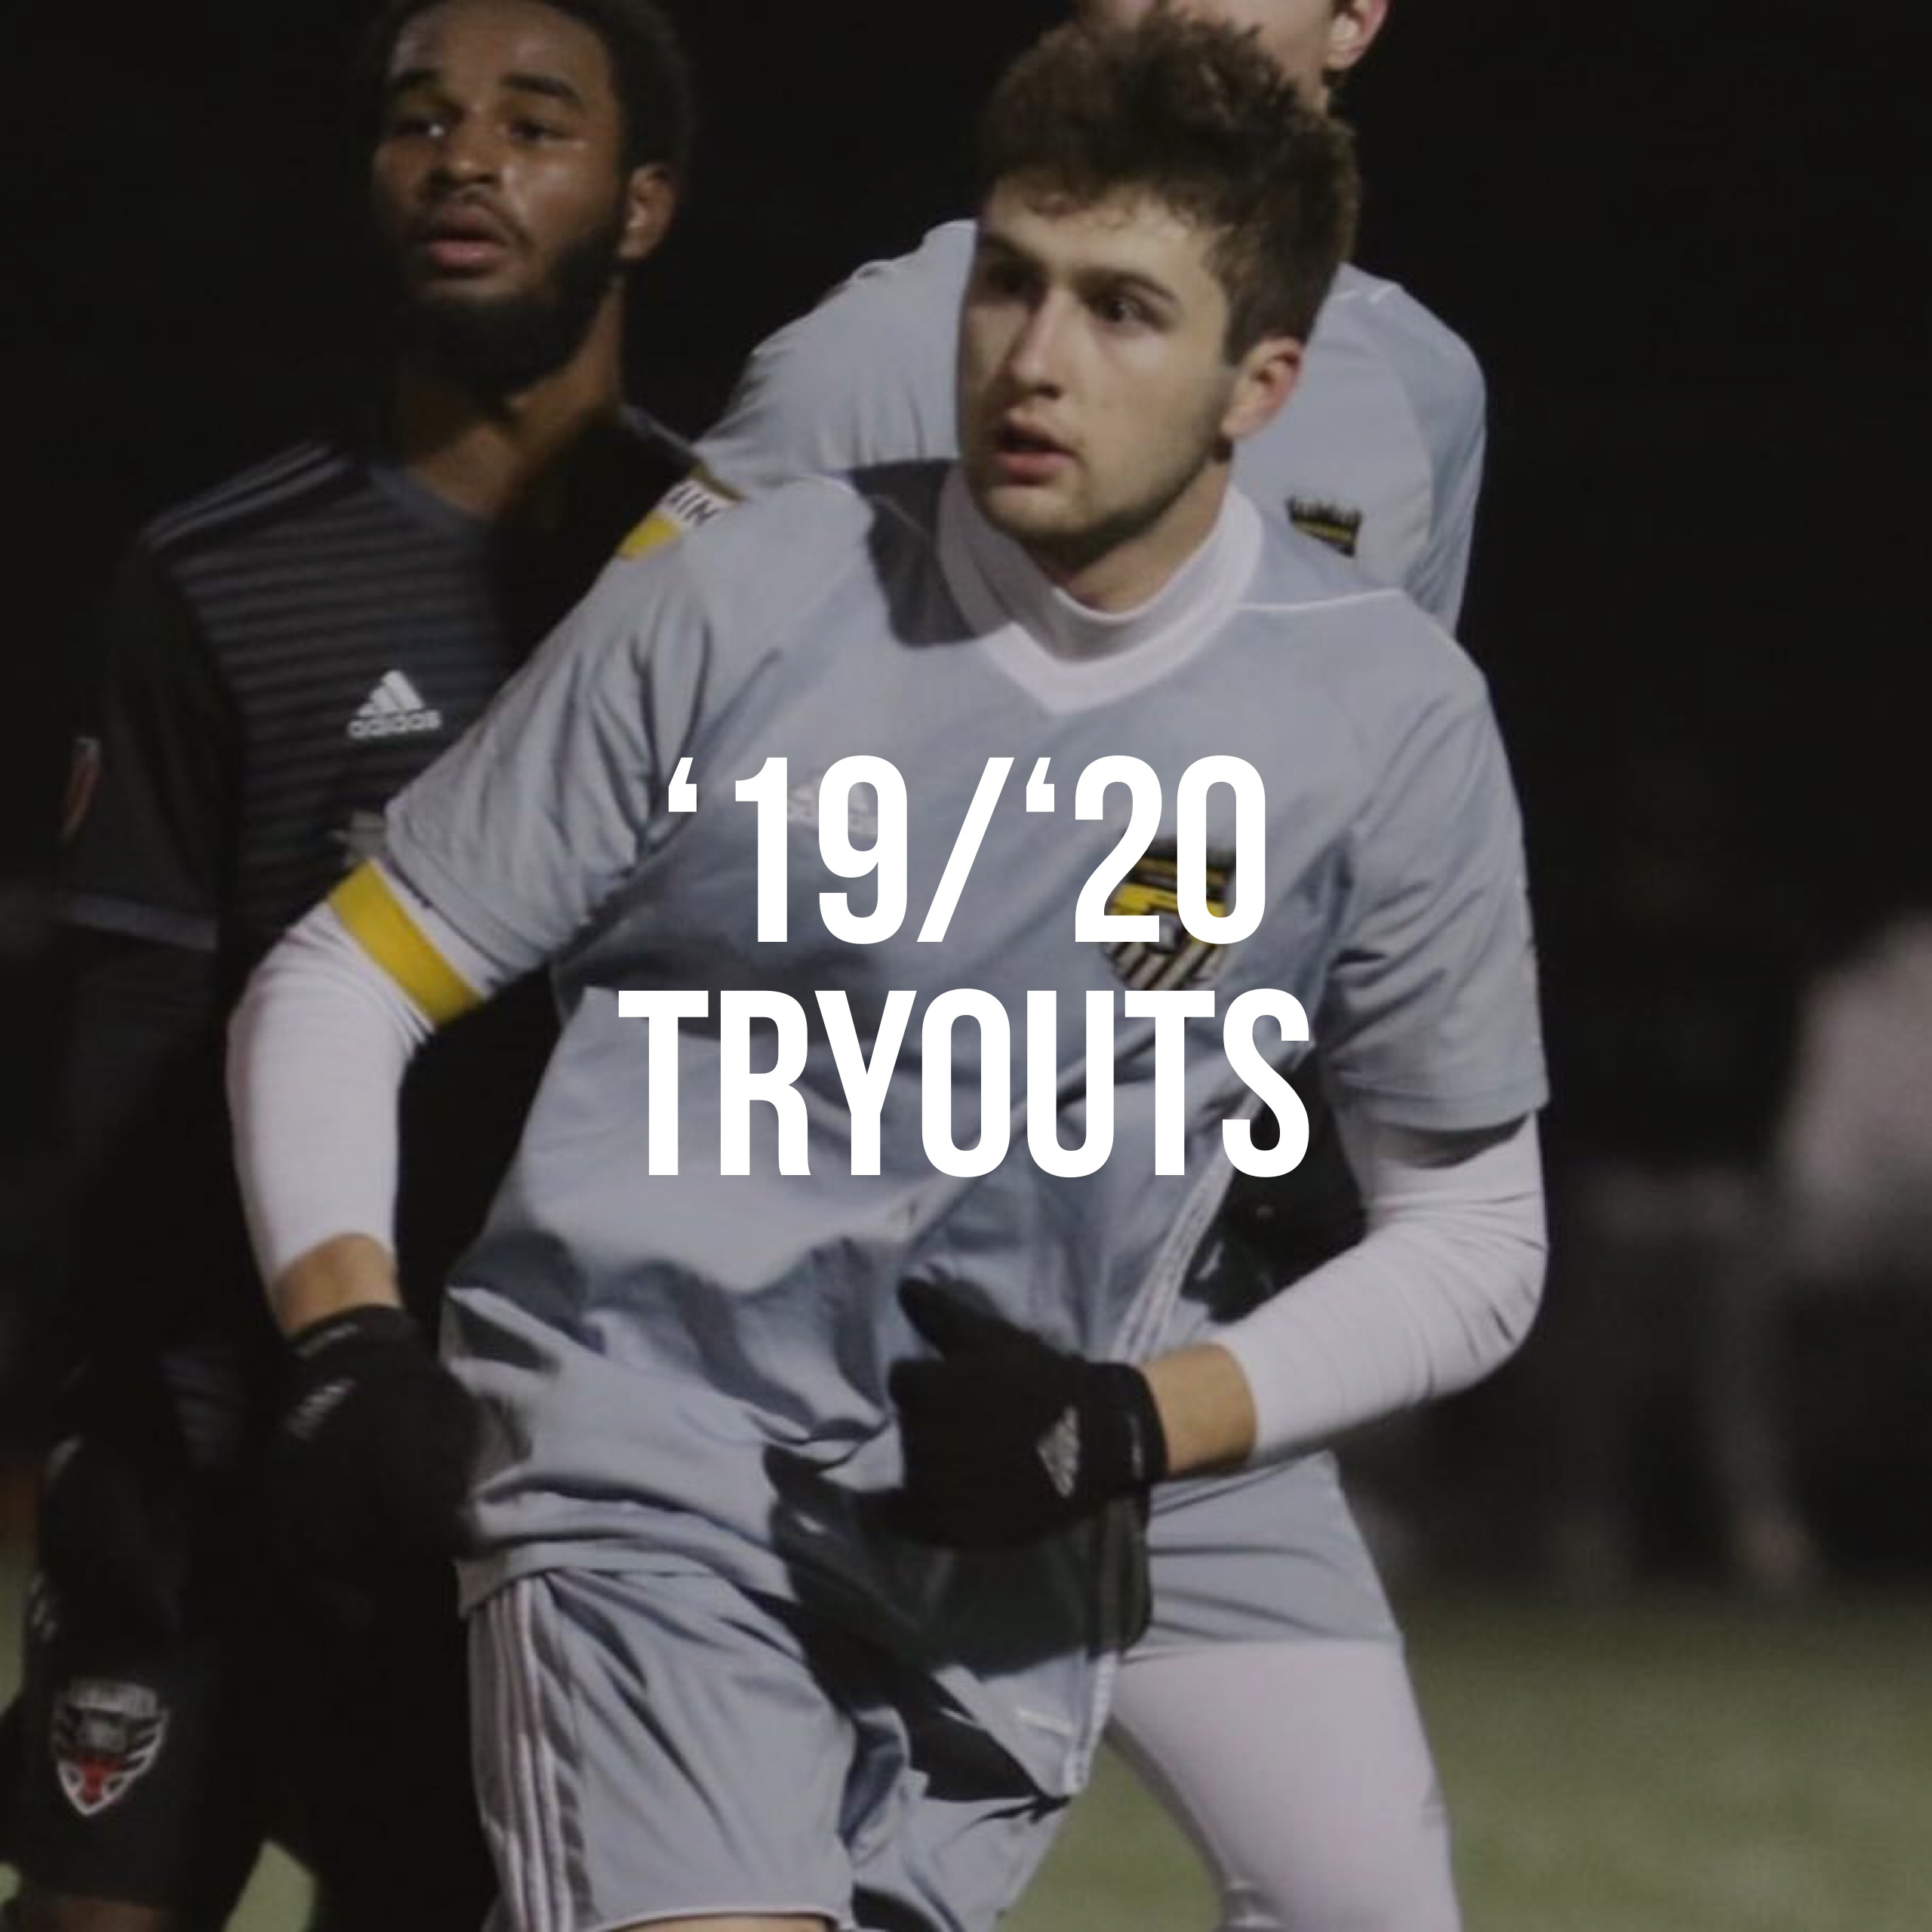 '19/20 Tryouts